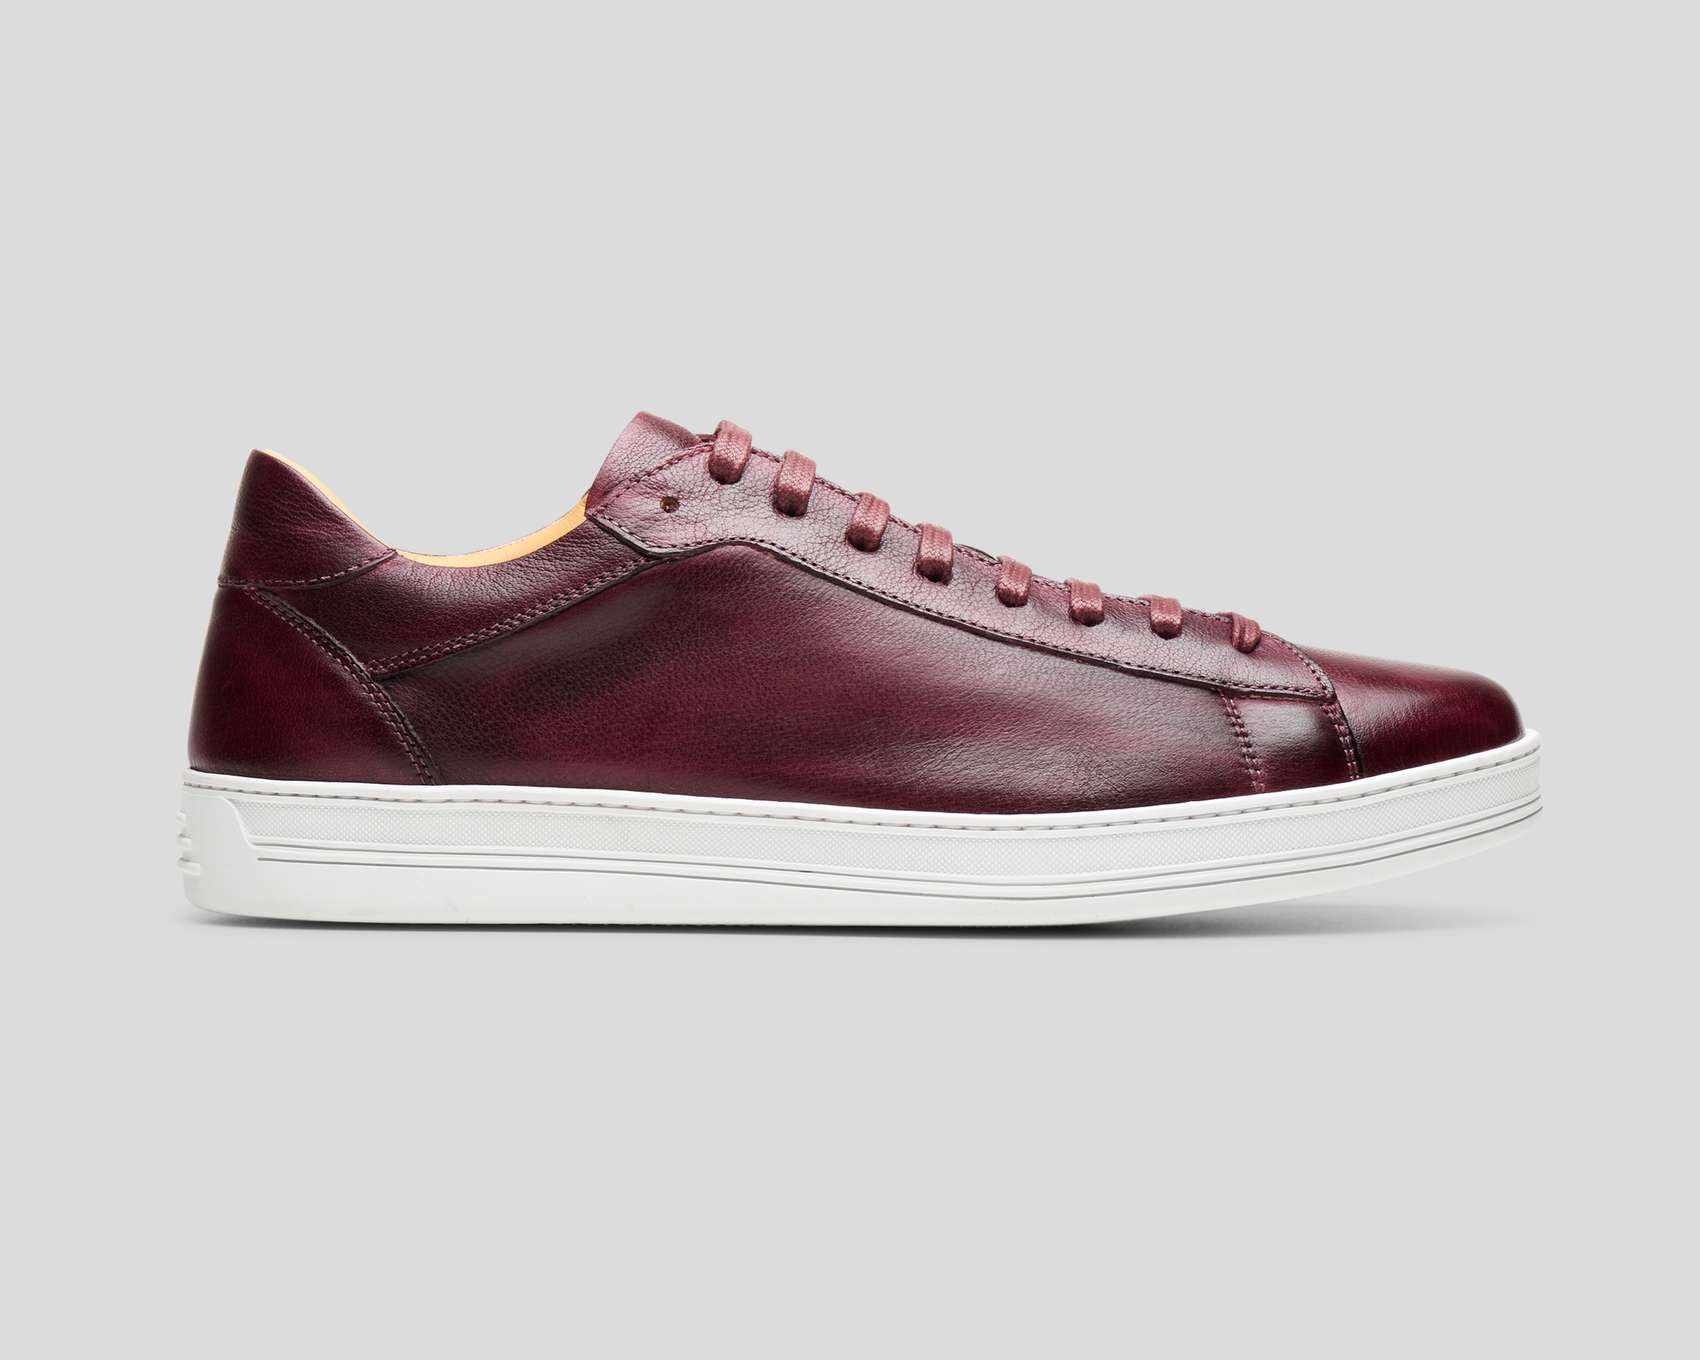 #31 -  M. Gemi Netto Due Hand Painted Buffalo Leather Sneaker